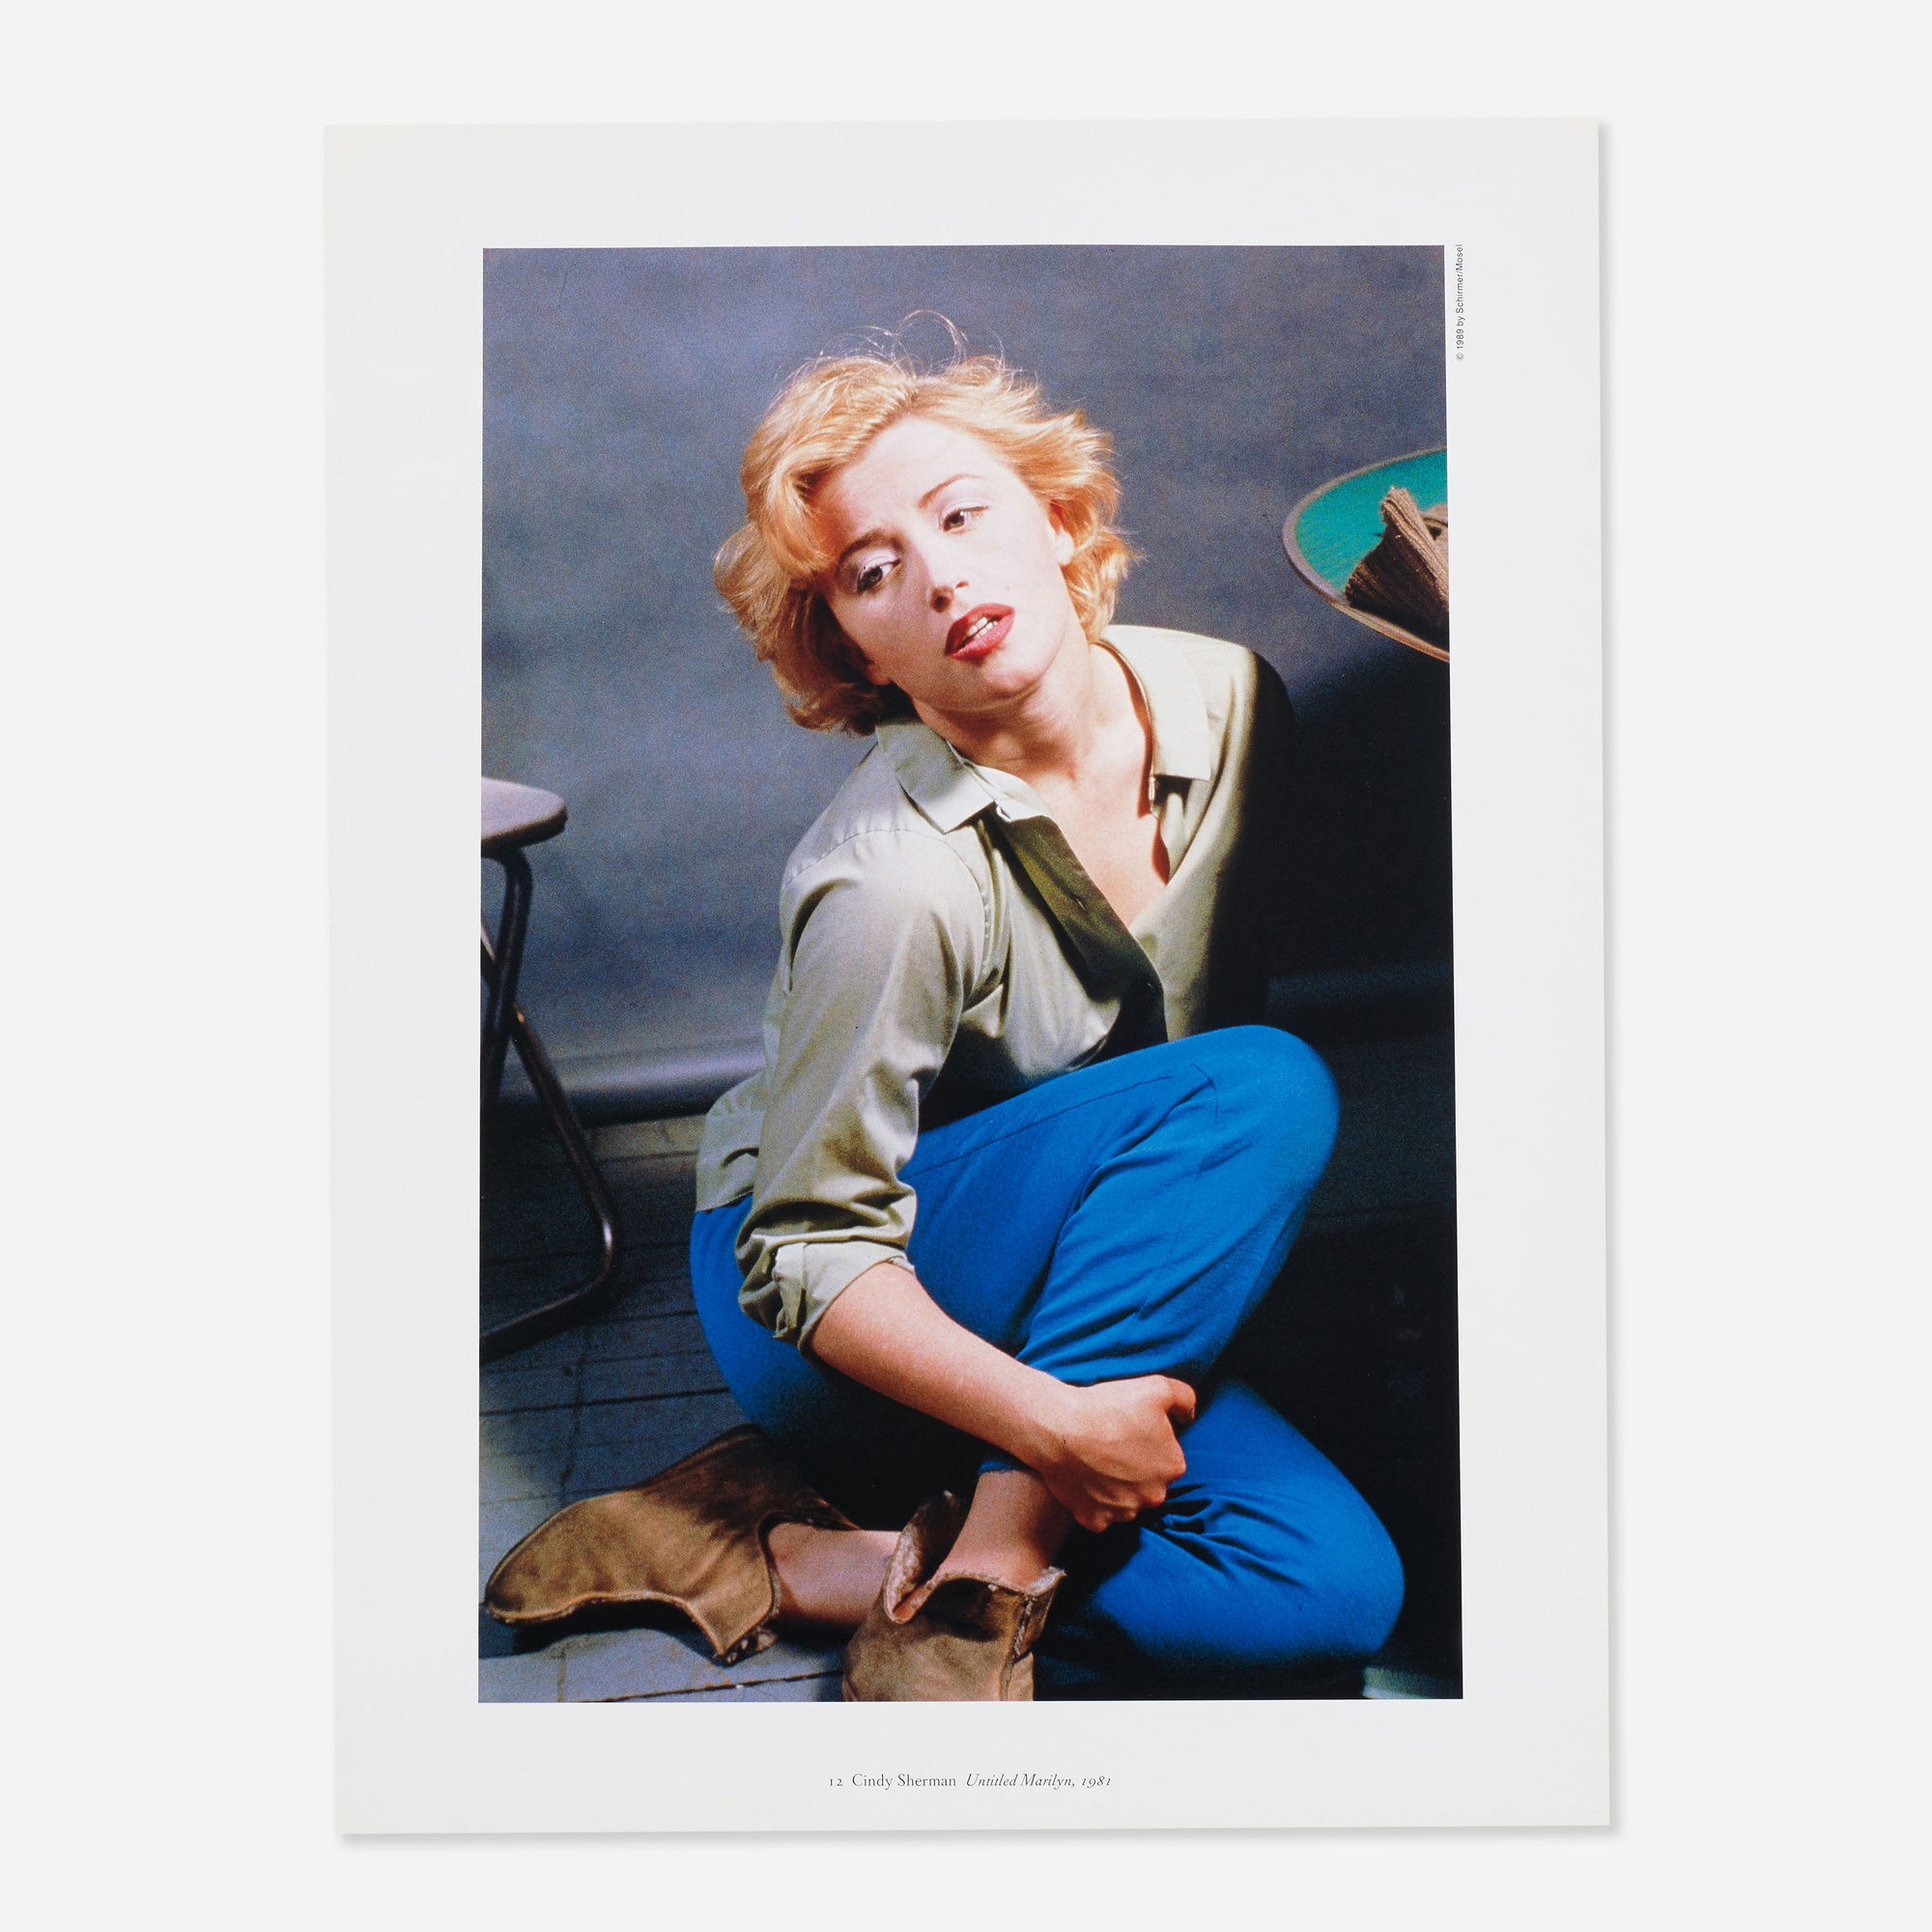 726: Cindy Sherman / Untitled (Marilyn) from the Jubilee portfolio (1 of 1)